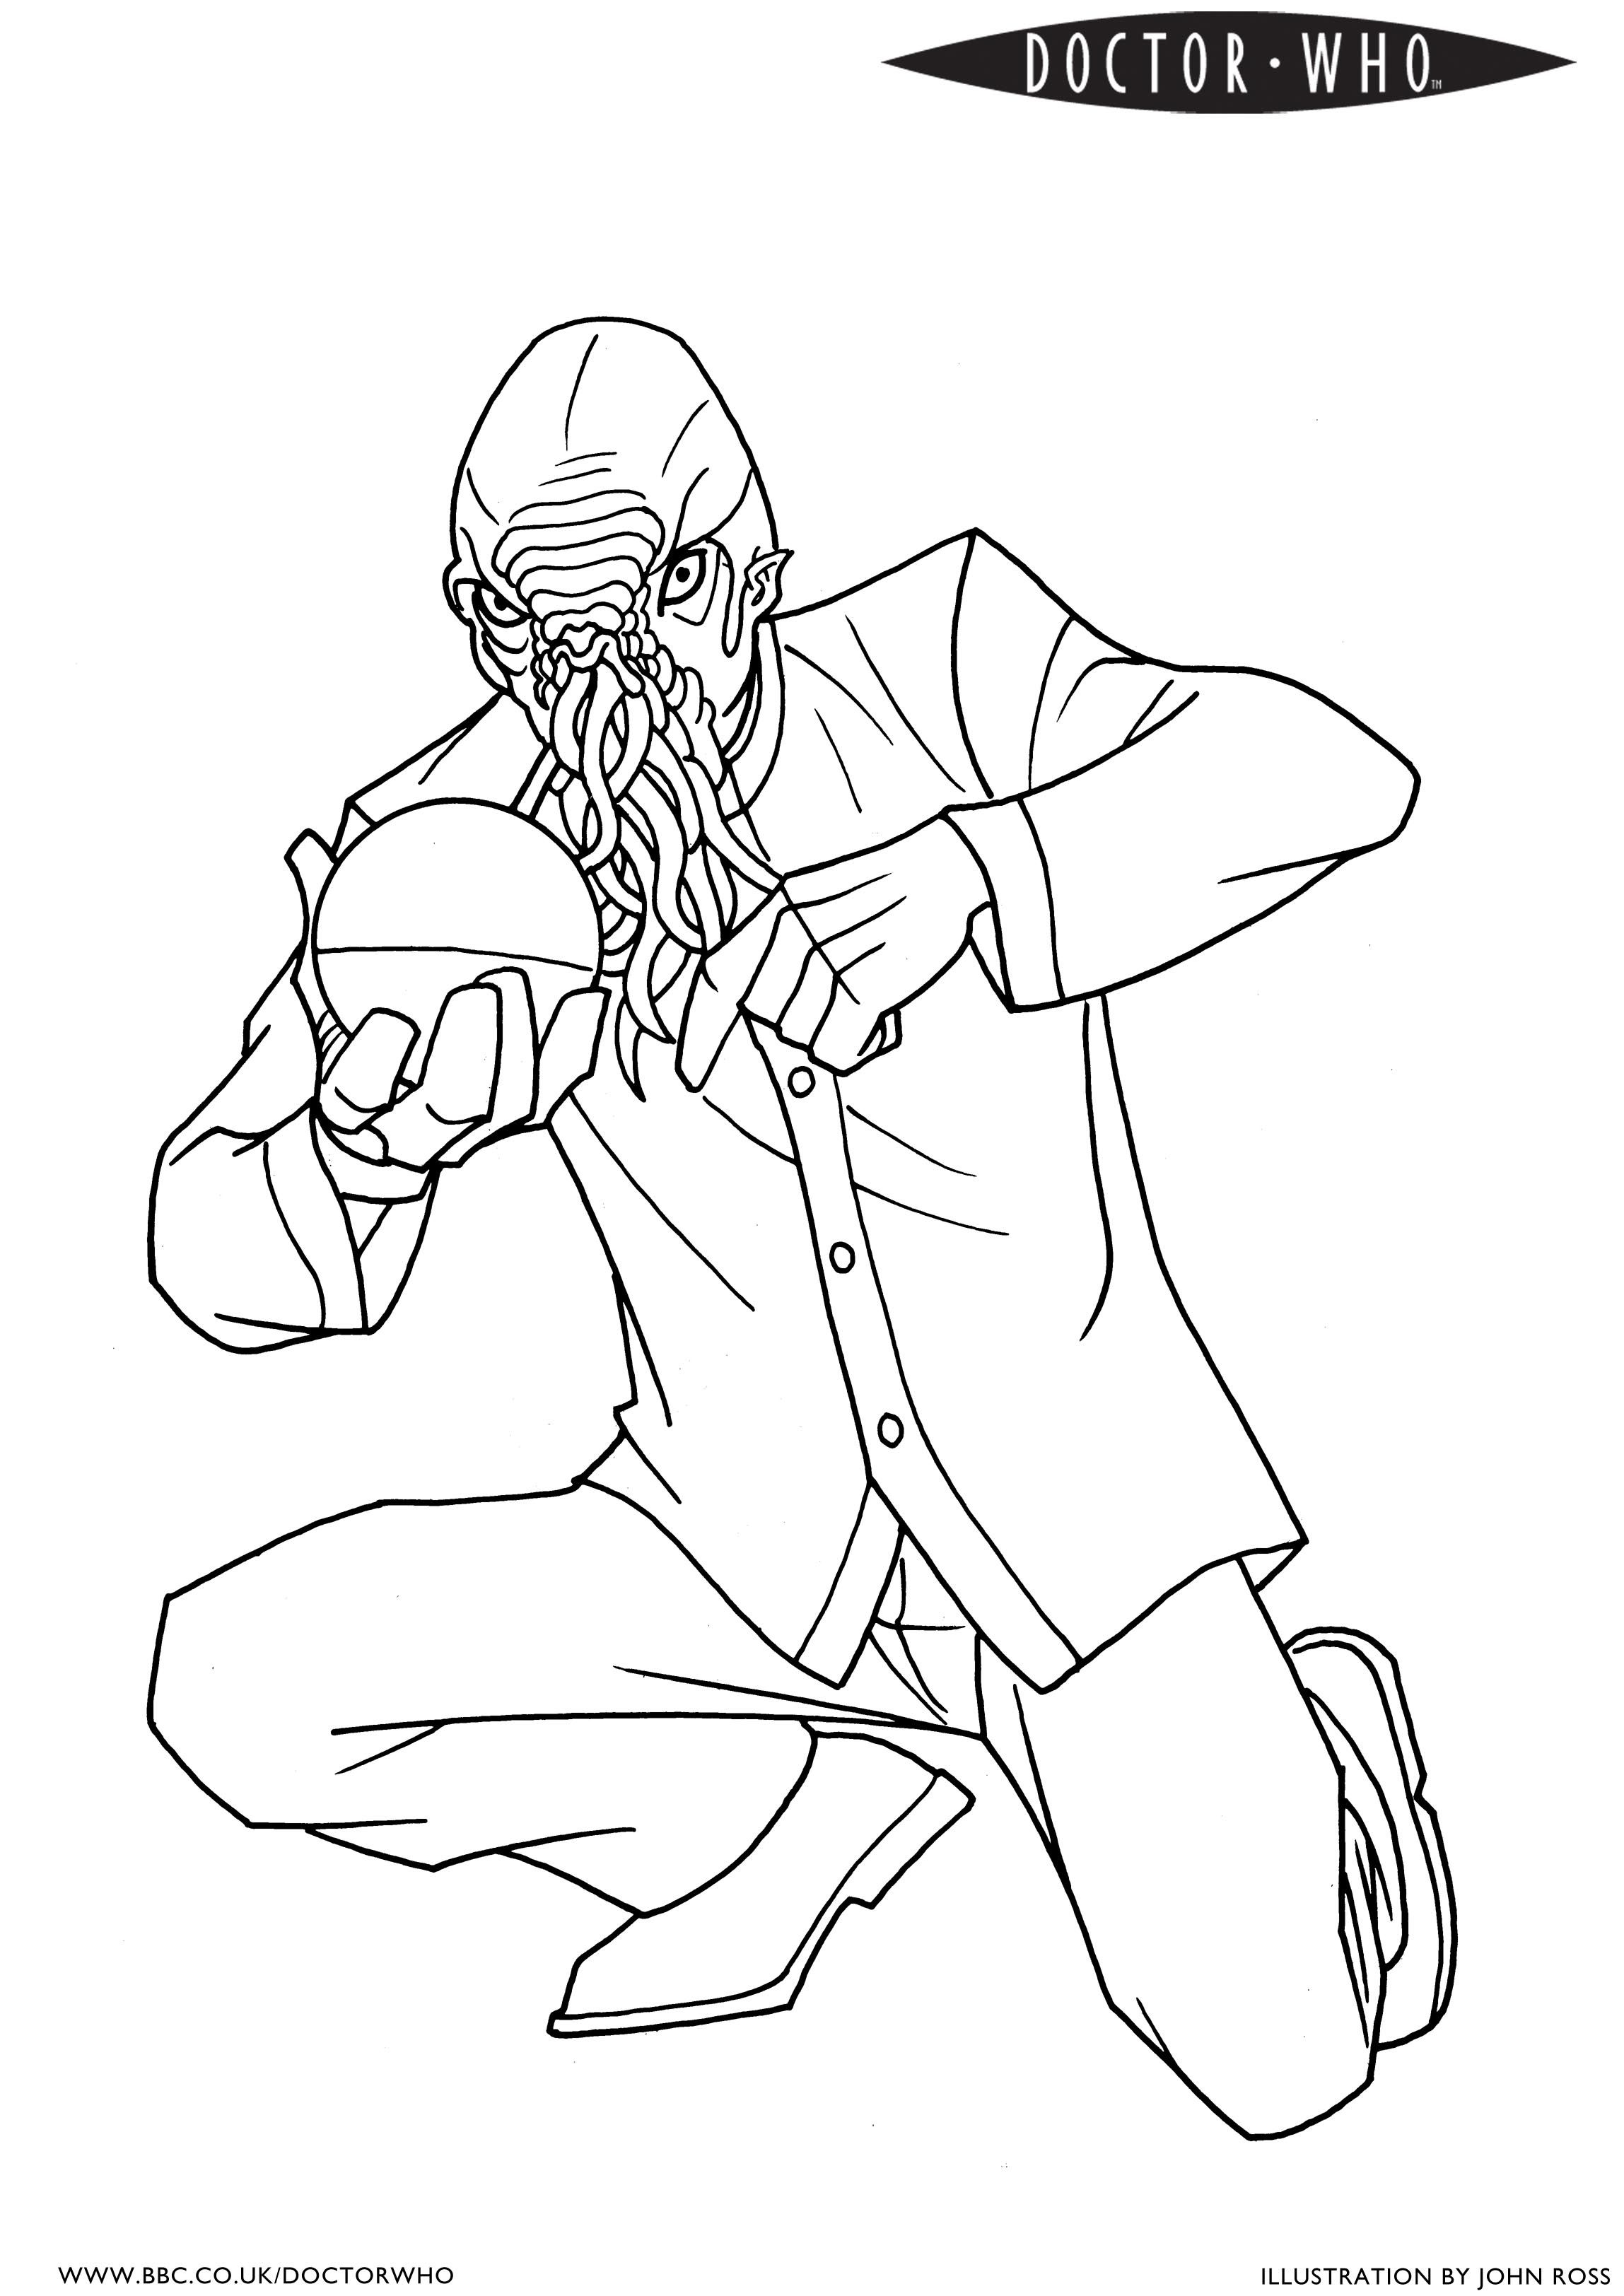 Coloring pages for doctors - Image Detail For Can T Believe I Found Doctor Who Coloring Pages Isn